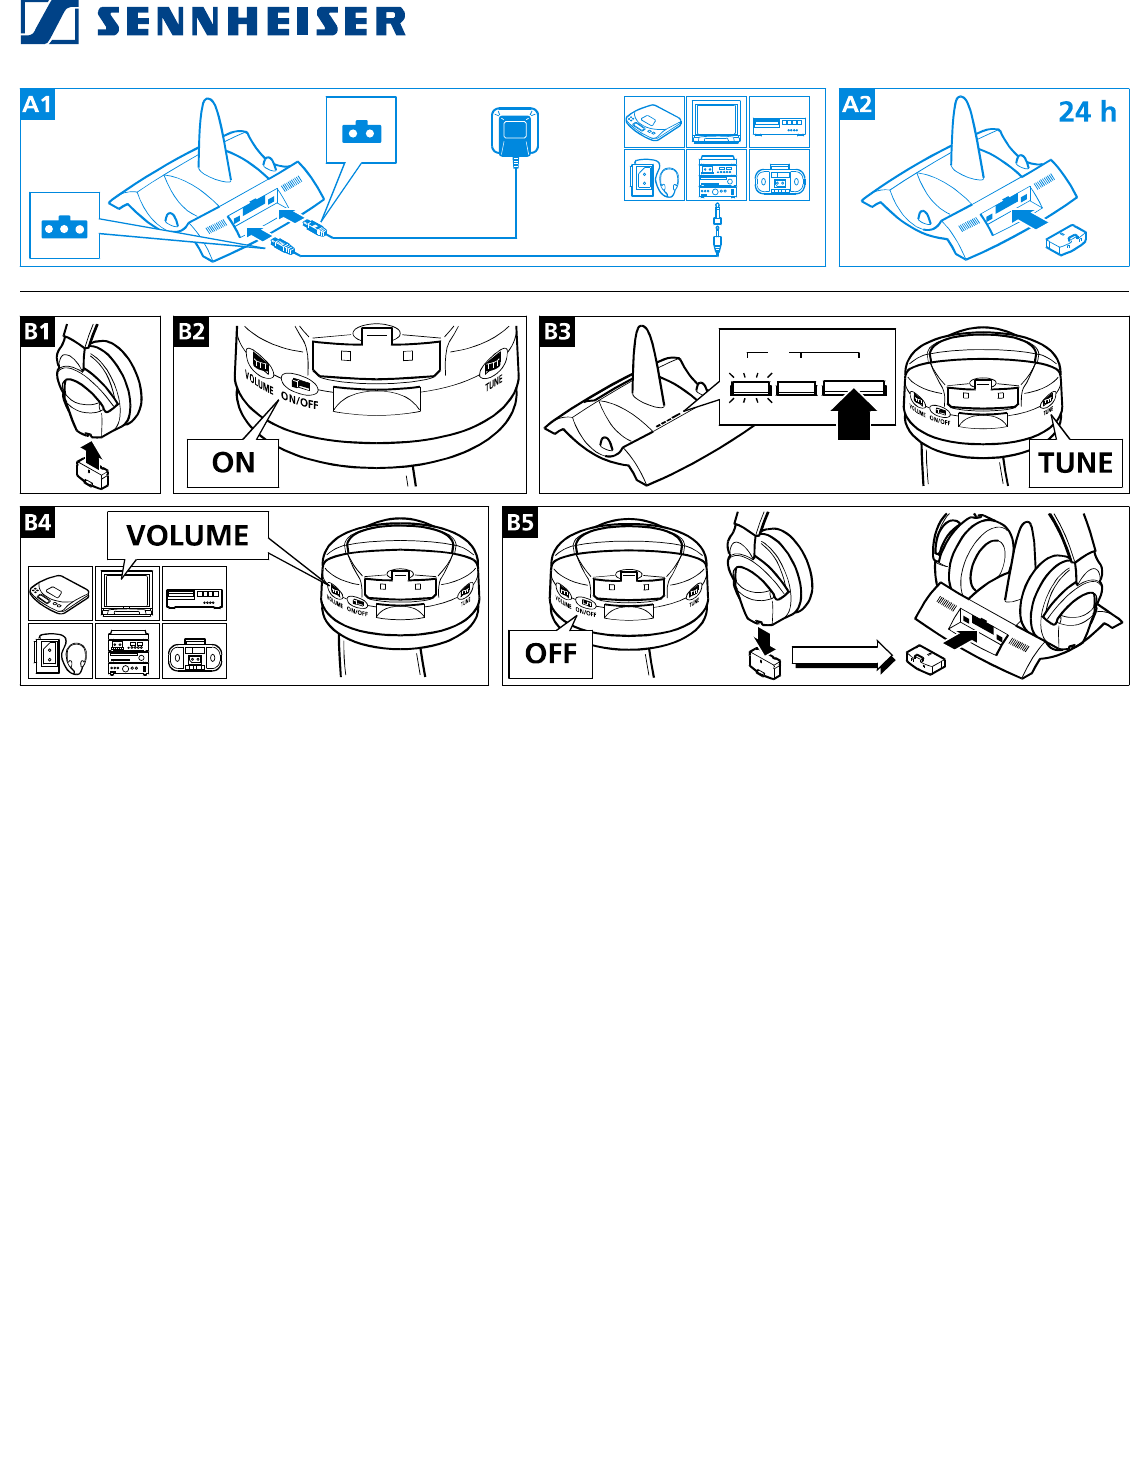 bose soundlink 2 headphones manual